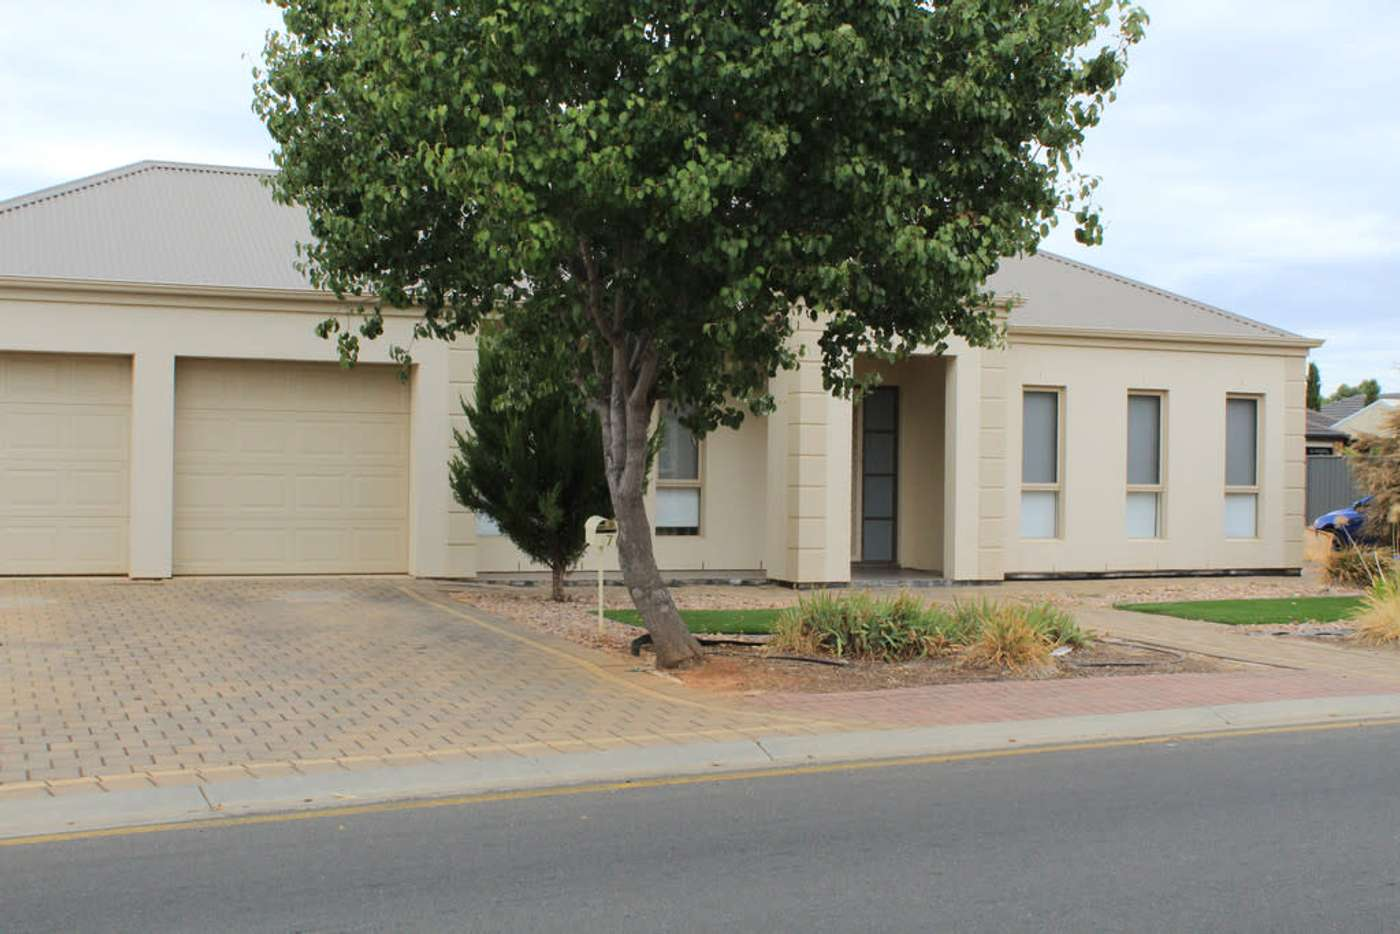 Main view of Homely house listing, 17 LAKESIDE DRIVE, Andrews Farm SA 5114